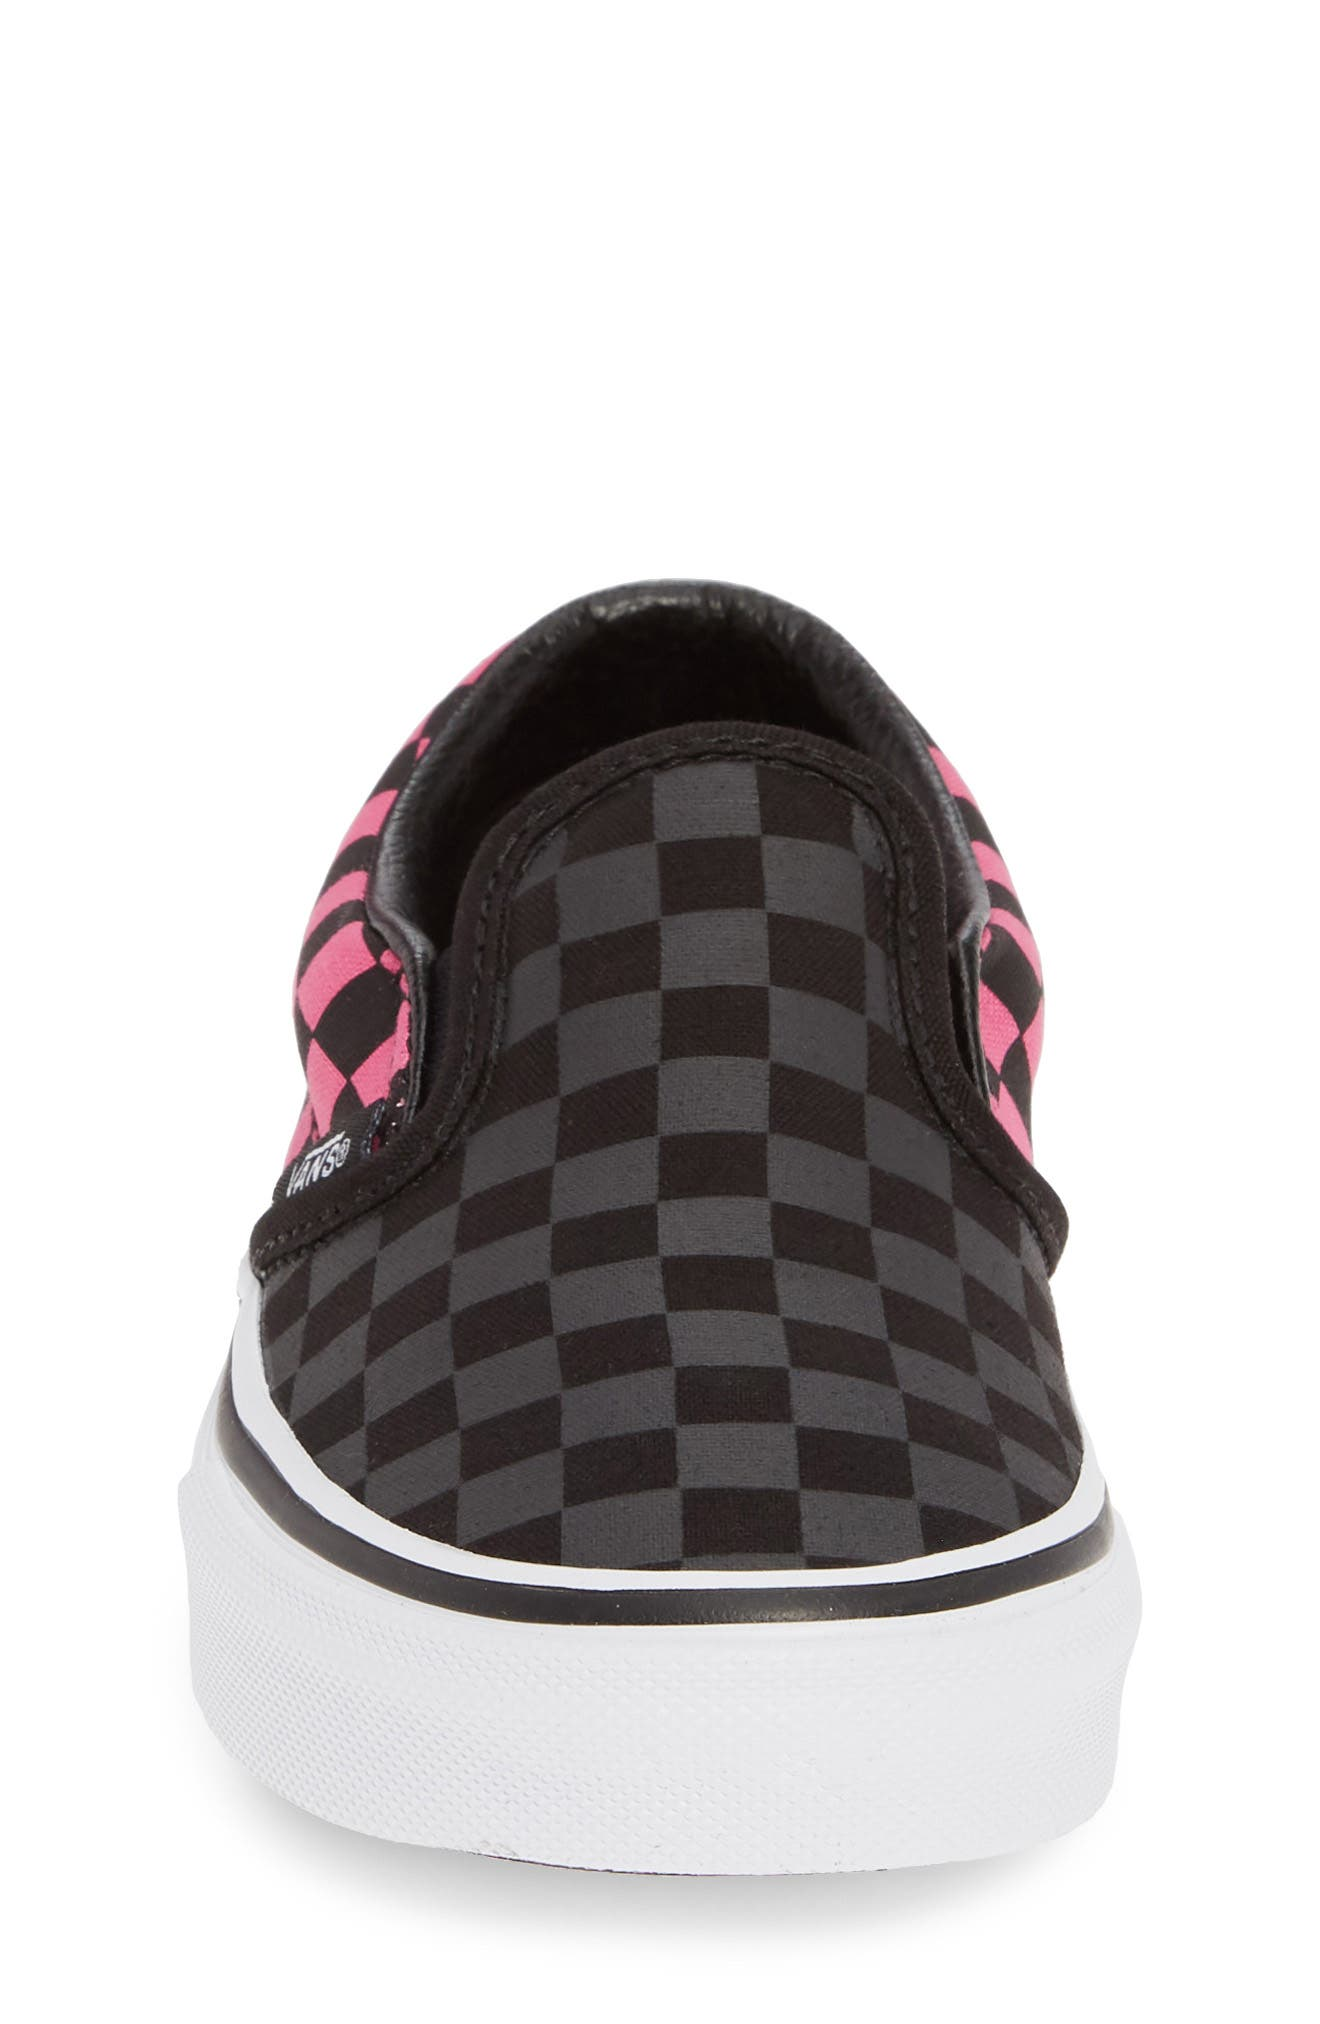 VANS, Classic Checker Slip-On, Alternate thumbnail 4, color, CARMINE ROSE/ BLACK